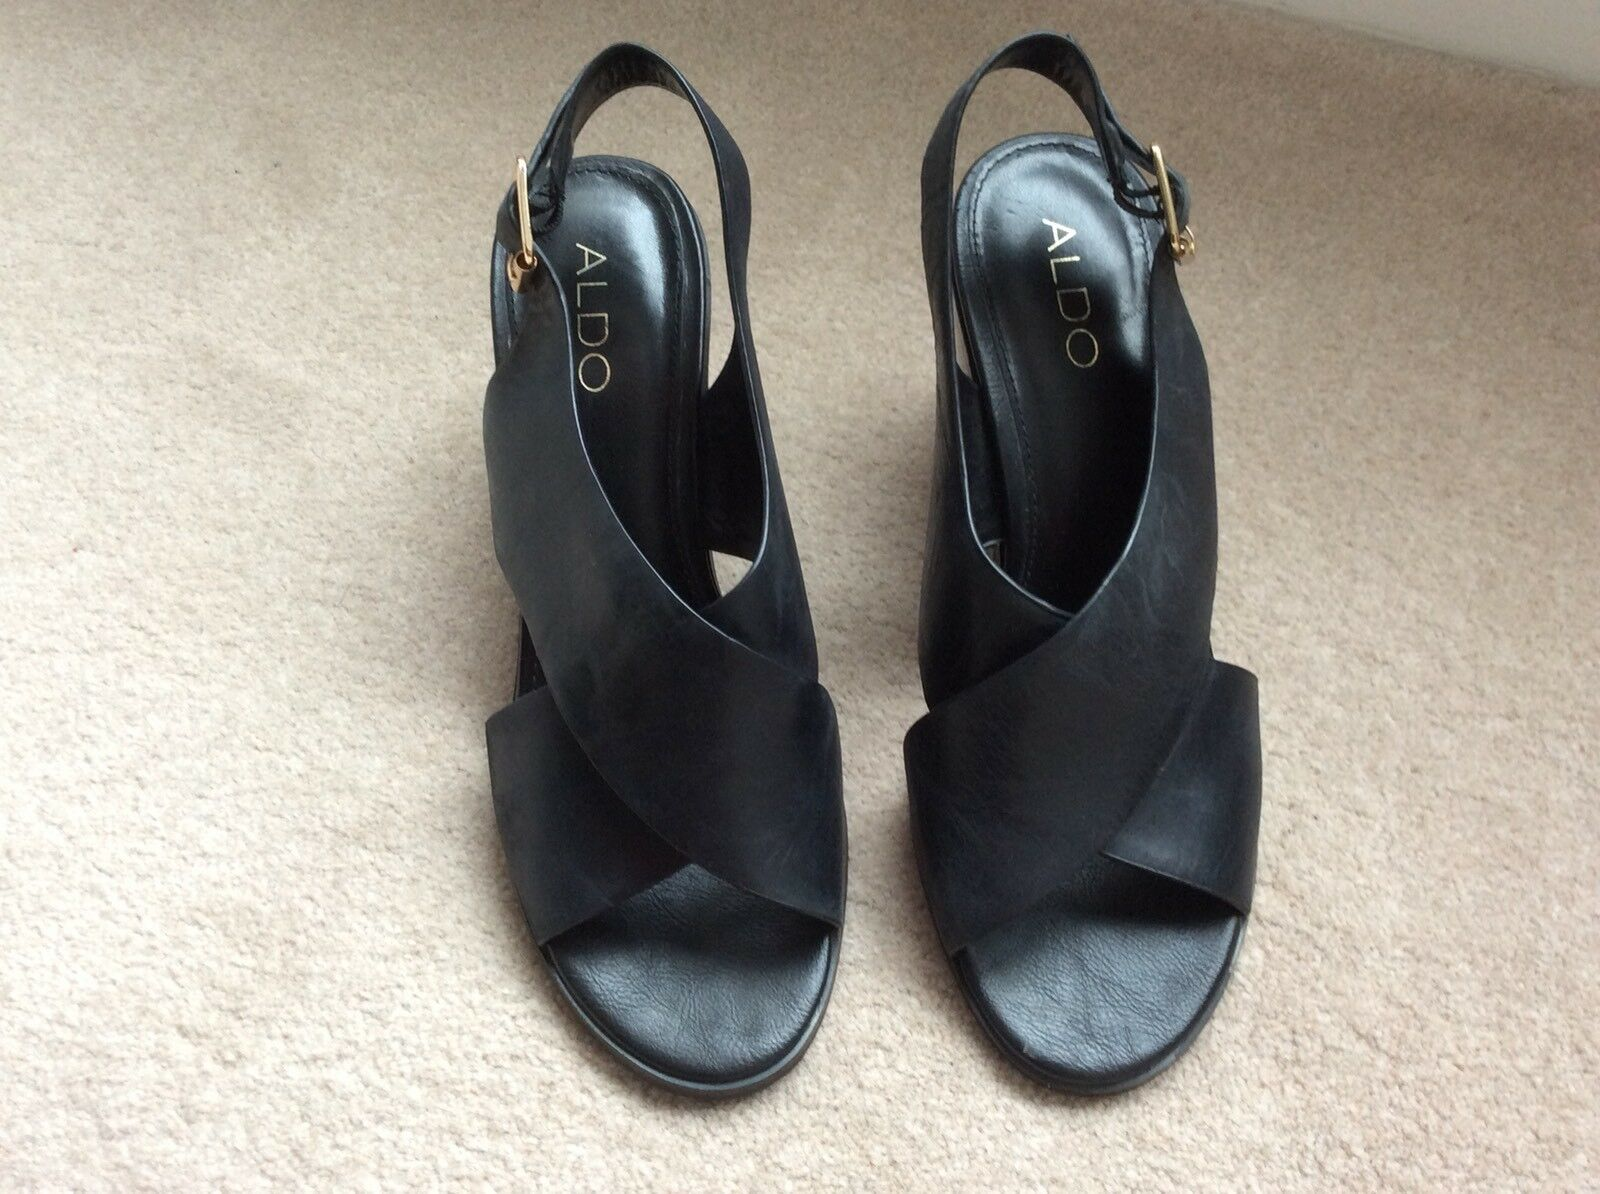 ALDO BLACK LEATHER STRAPPY HEELED SANDALS SIZE 7 40 WORN ONCE